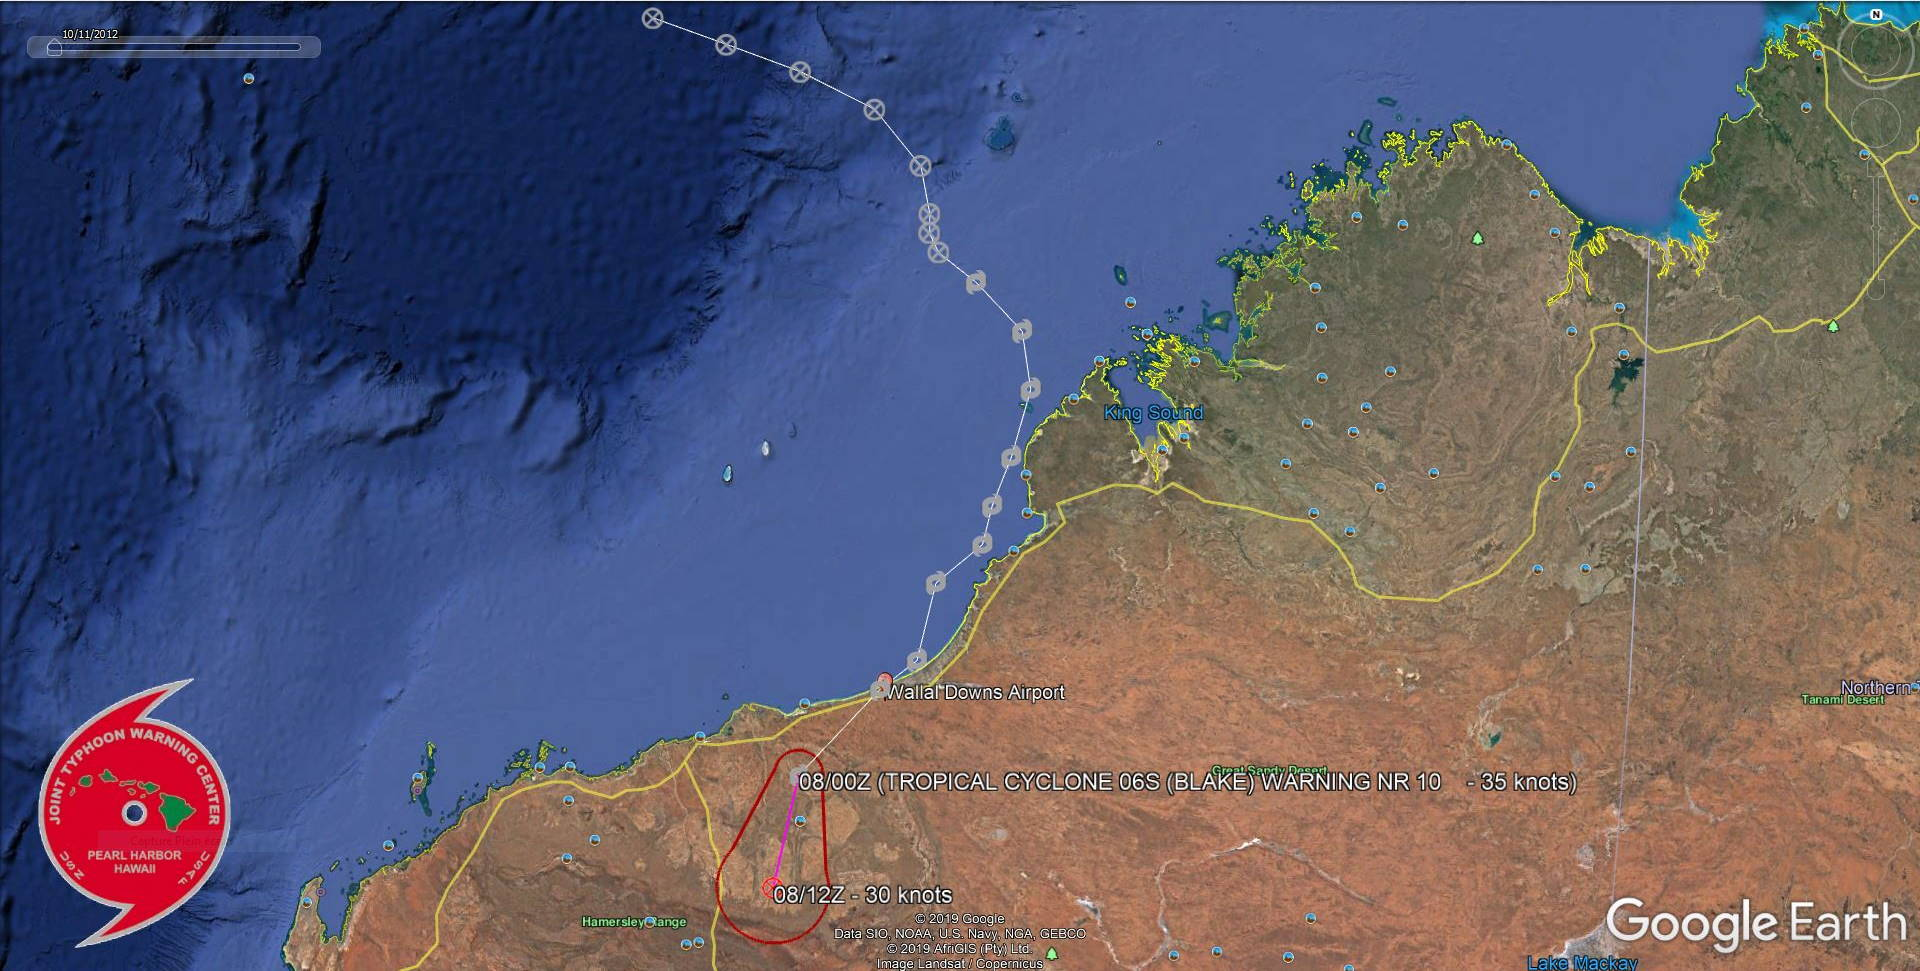 TC 06S(BLAKE) made landfall near Wallal Downs, lifetime peak intensity was 50knots